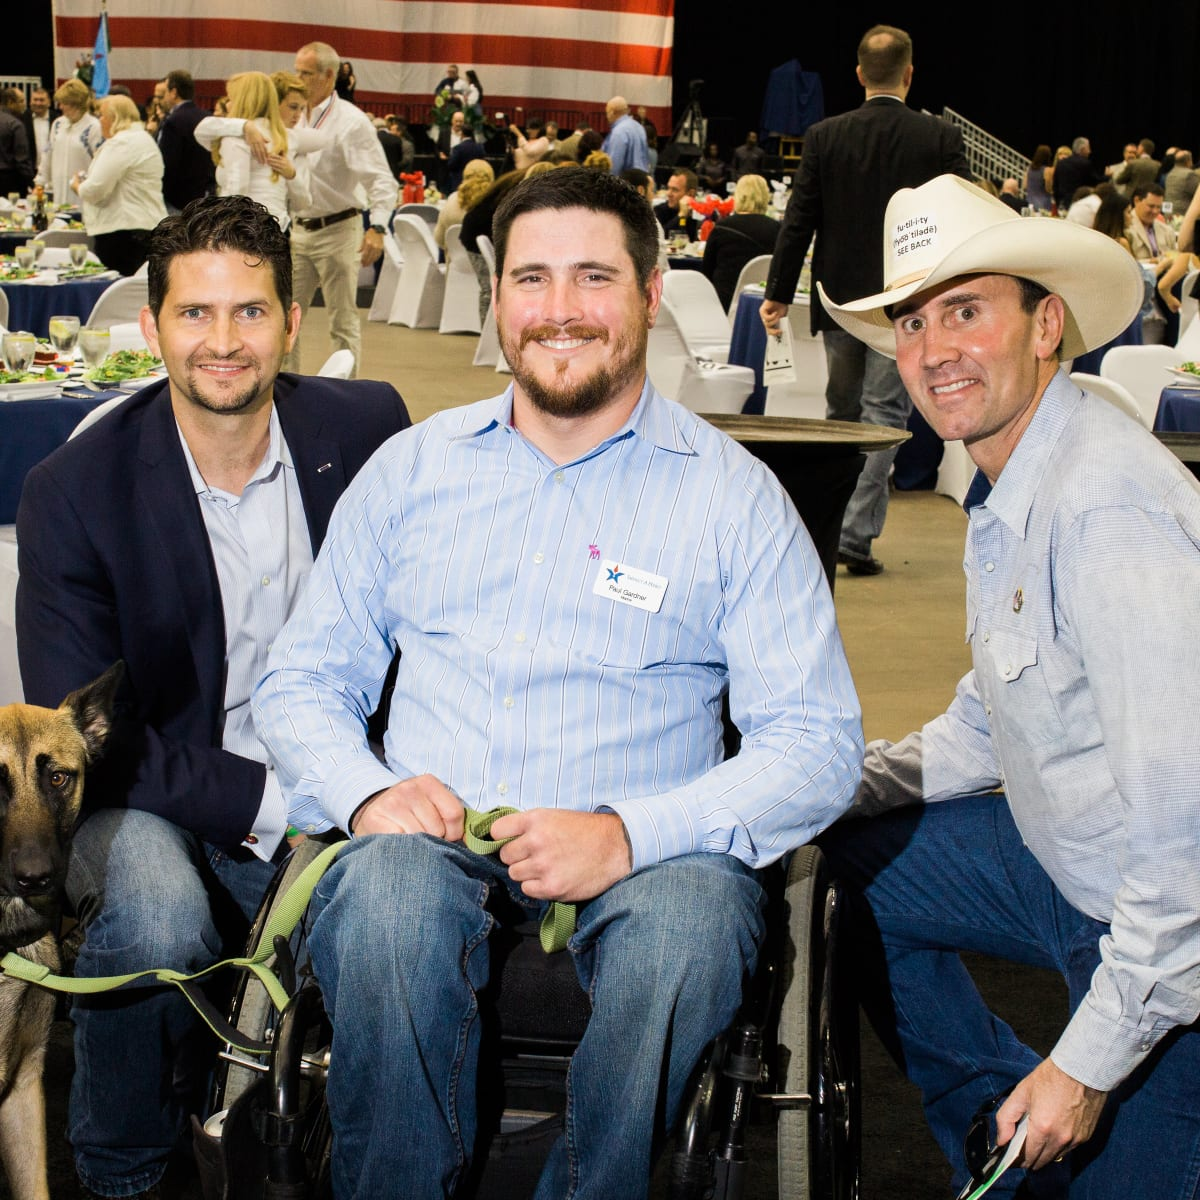 Houston, Impact A Hero Hall of Fame Gala, May 2016, Jason Shaw, Paul Gardner, Pete Olson